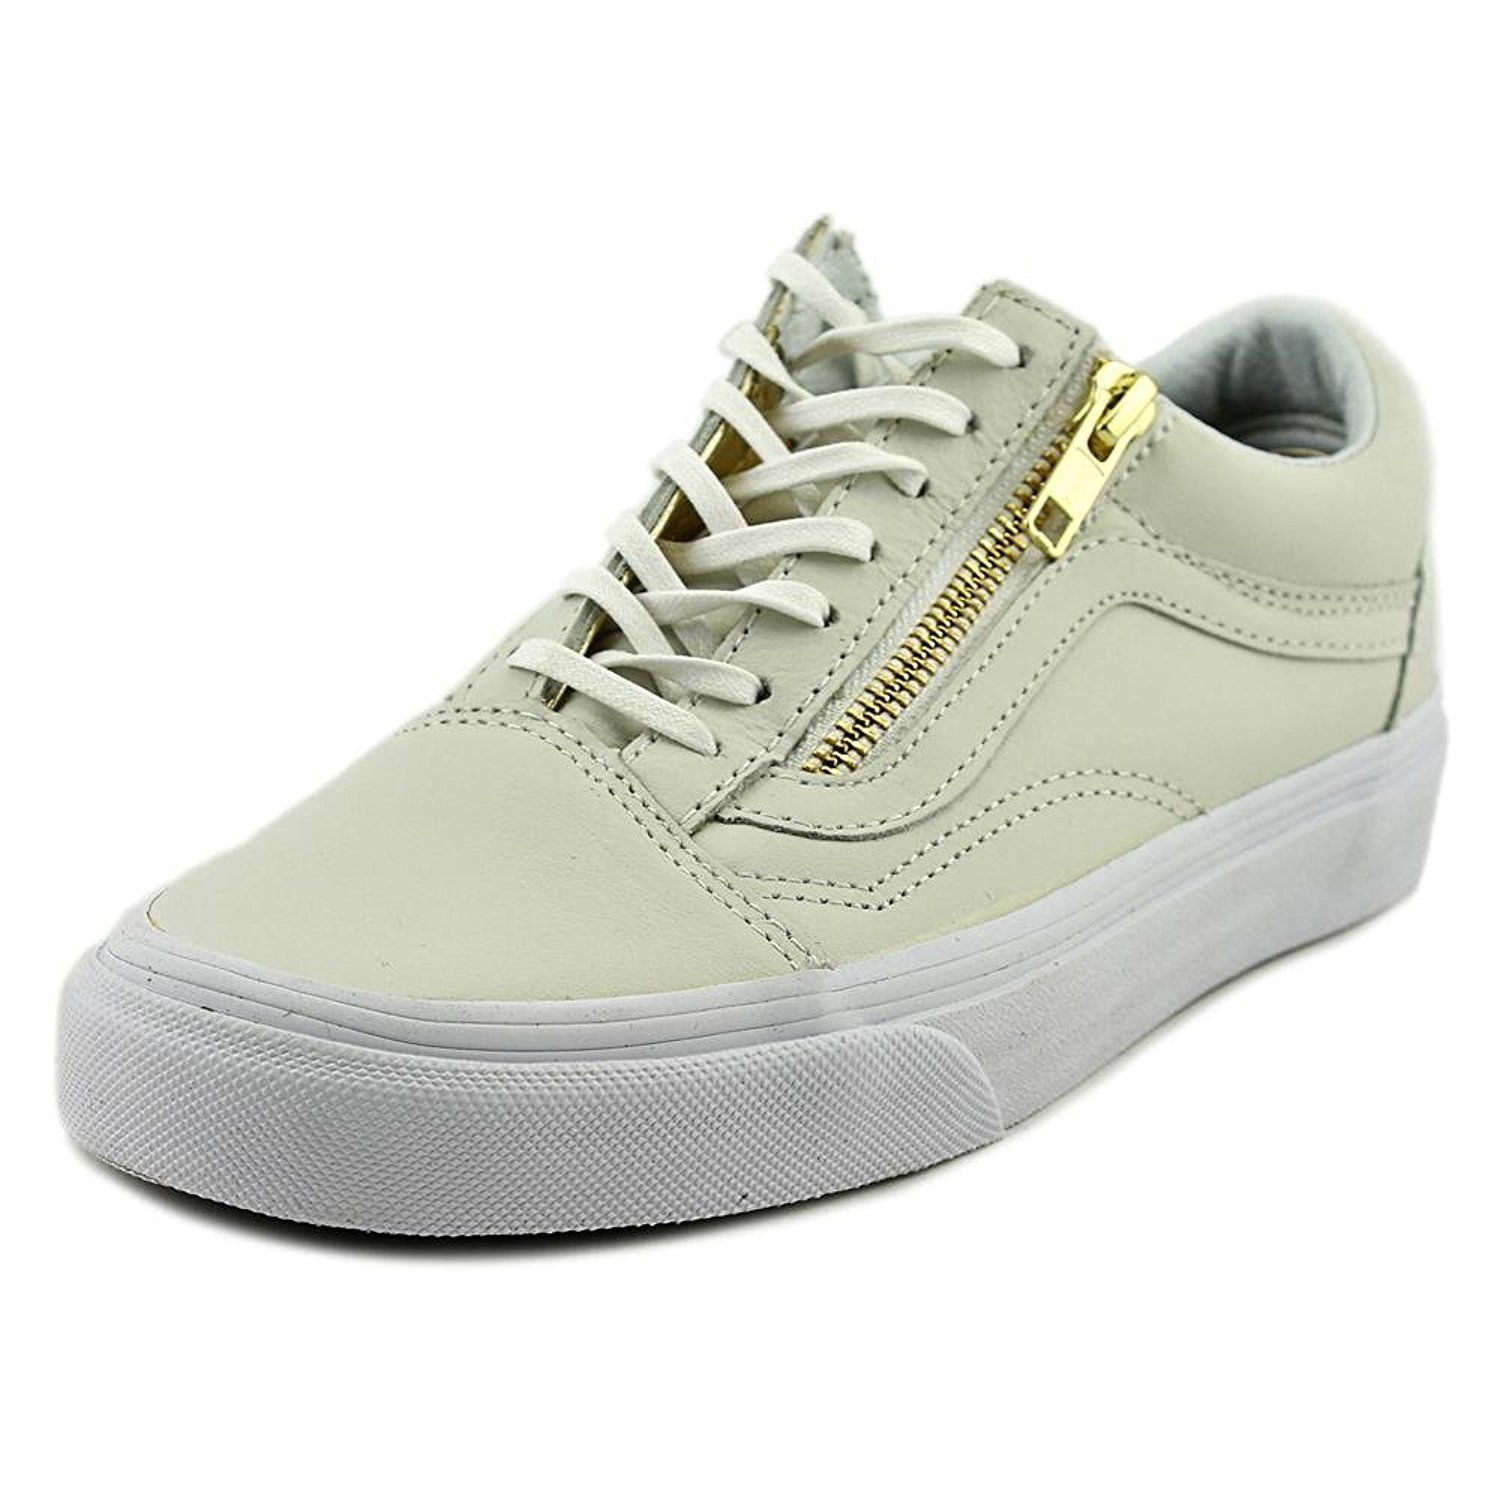 28d0aac623d Vans Old Skool Zip Leather True White Gold and similar items